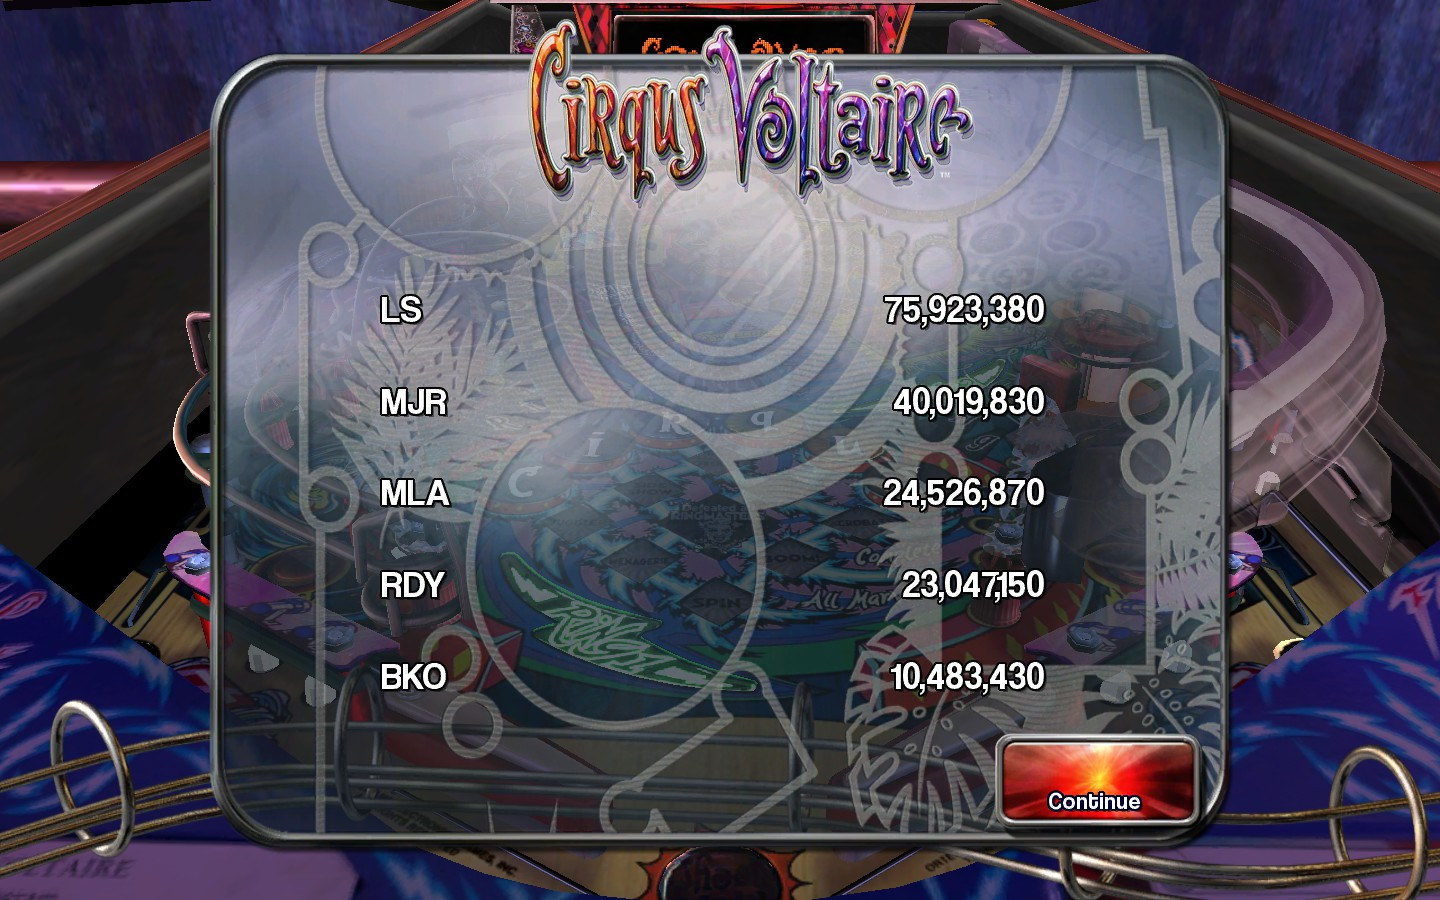 kamakazi20012: Pinball Arcade: Circus Voltaire (PC) 24,526,870 points on 2015-06-12 00:31:42